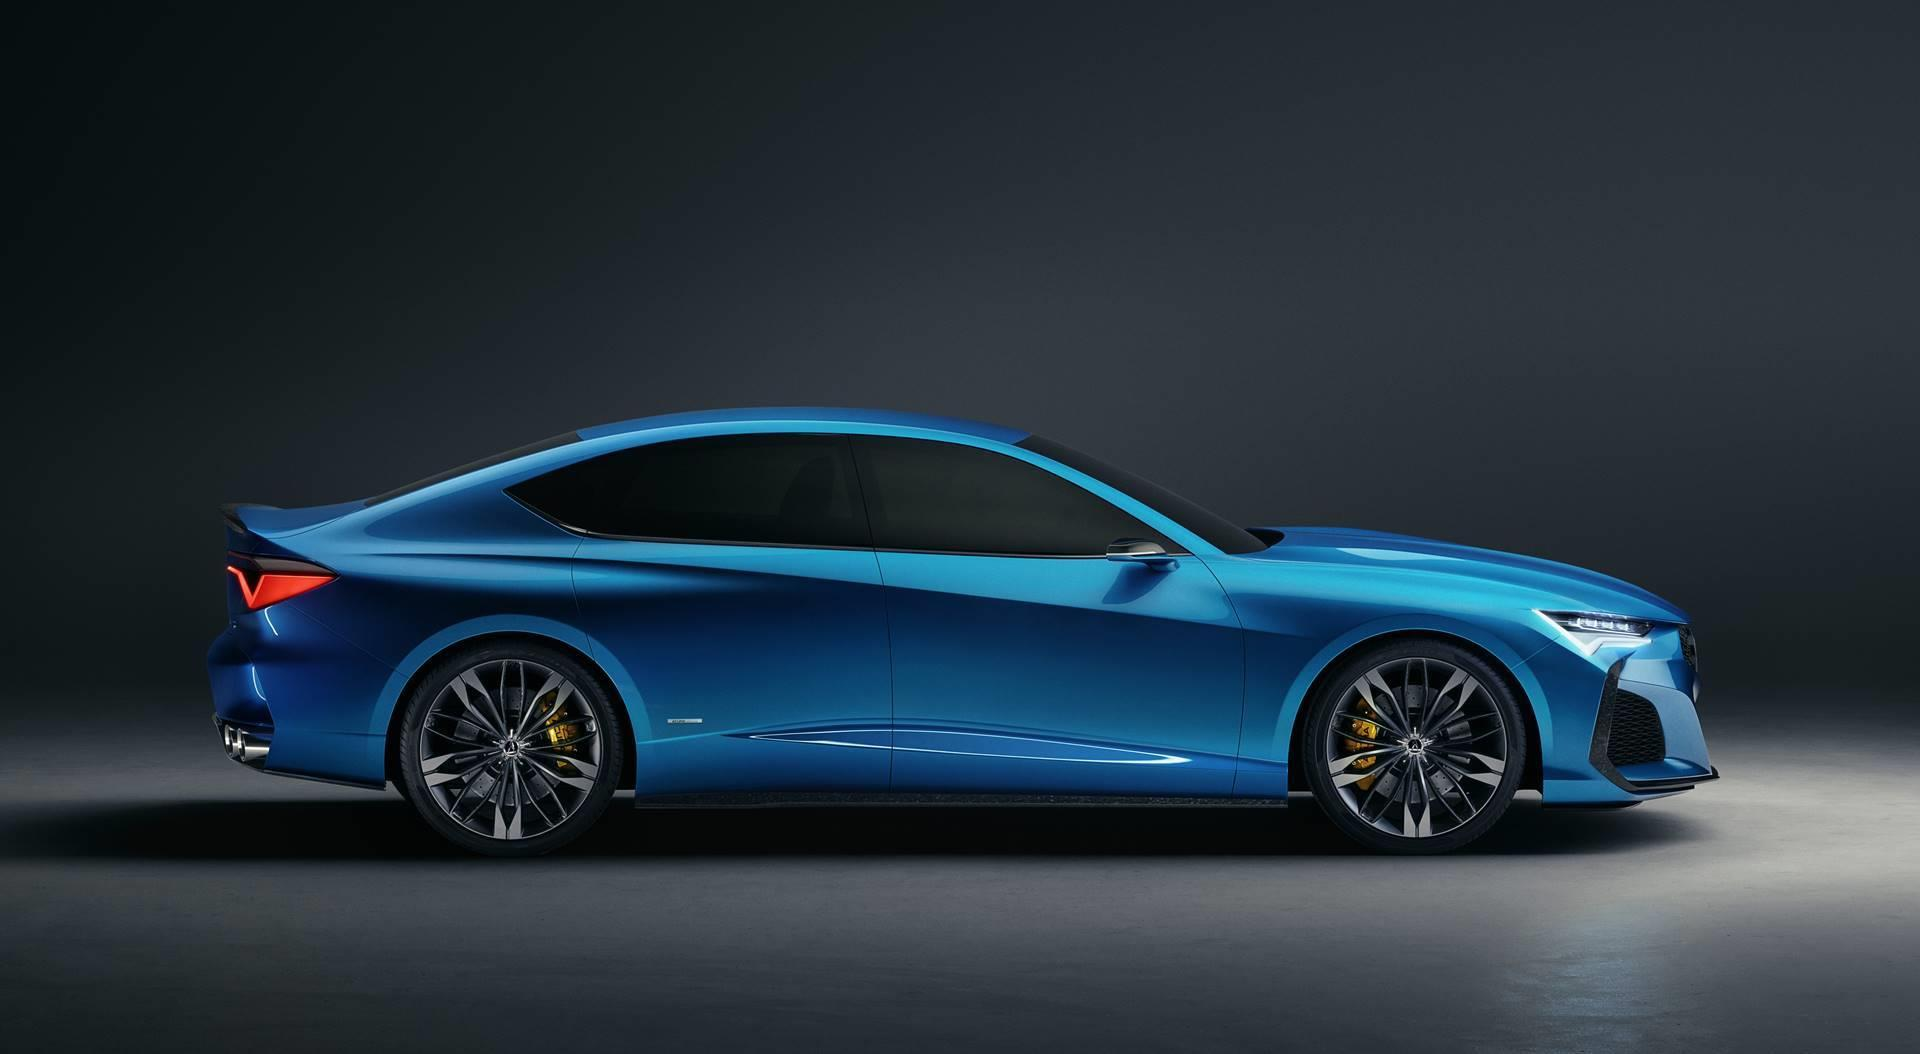 Acura Type R >> 2019 Acura Type S Concept News and Information, Research, and Pricing